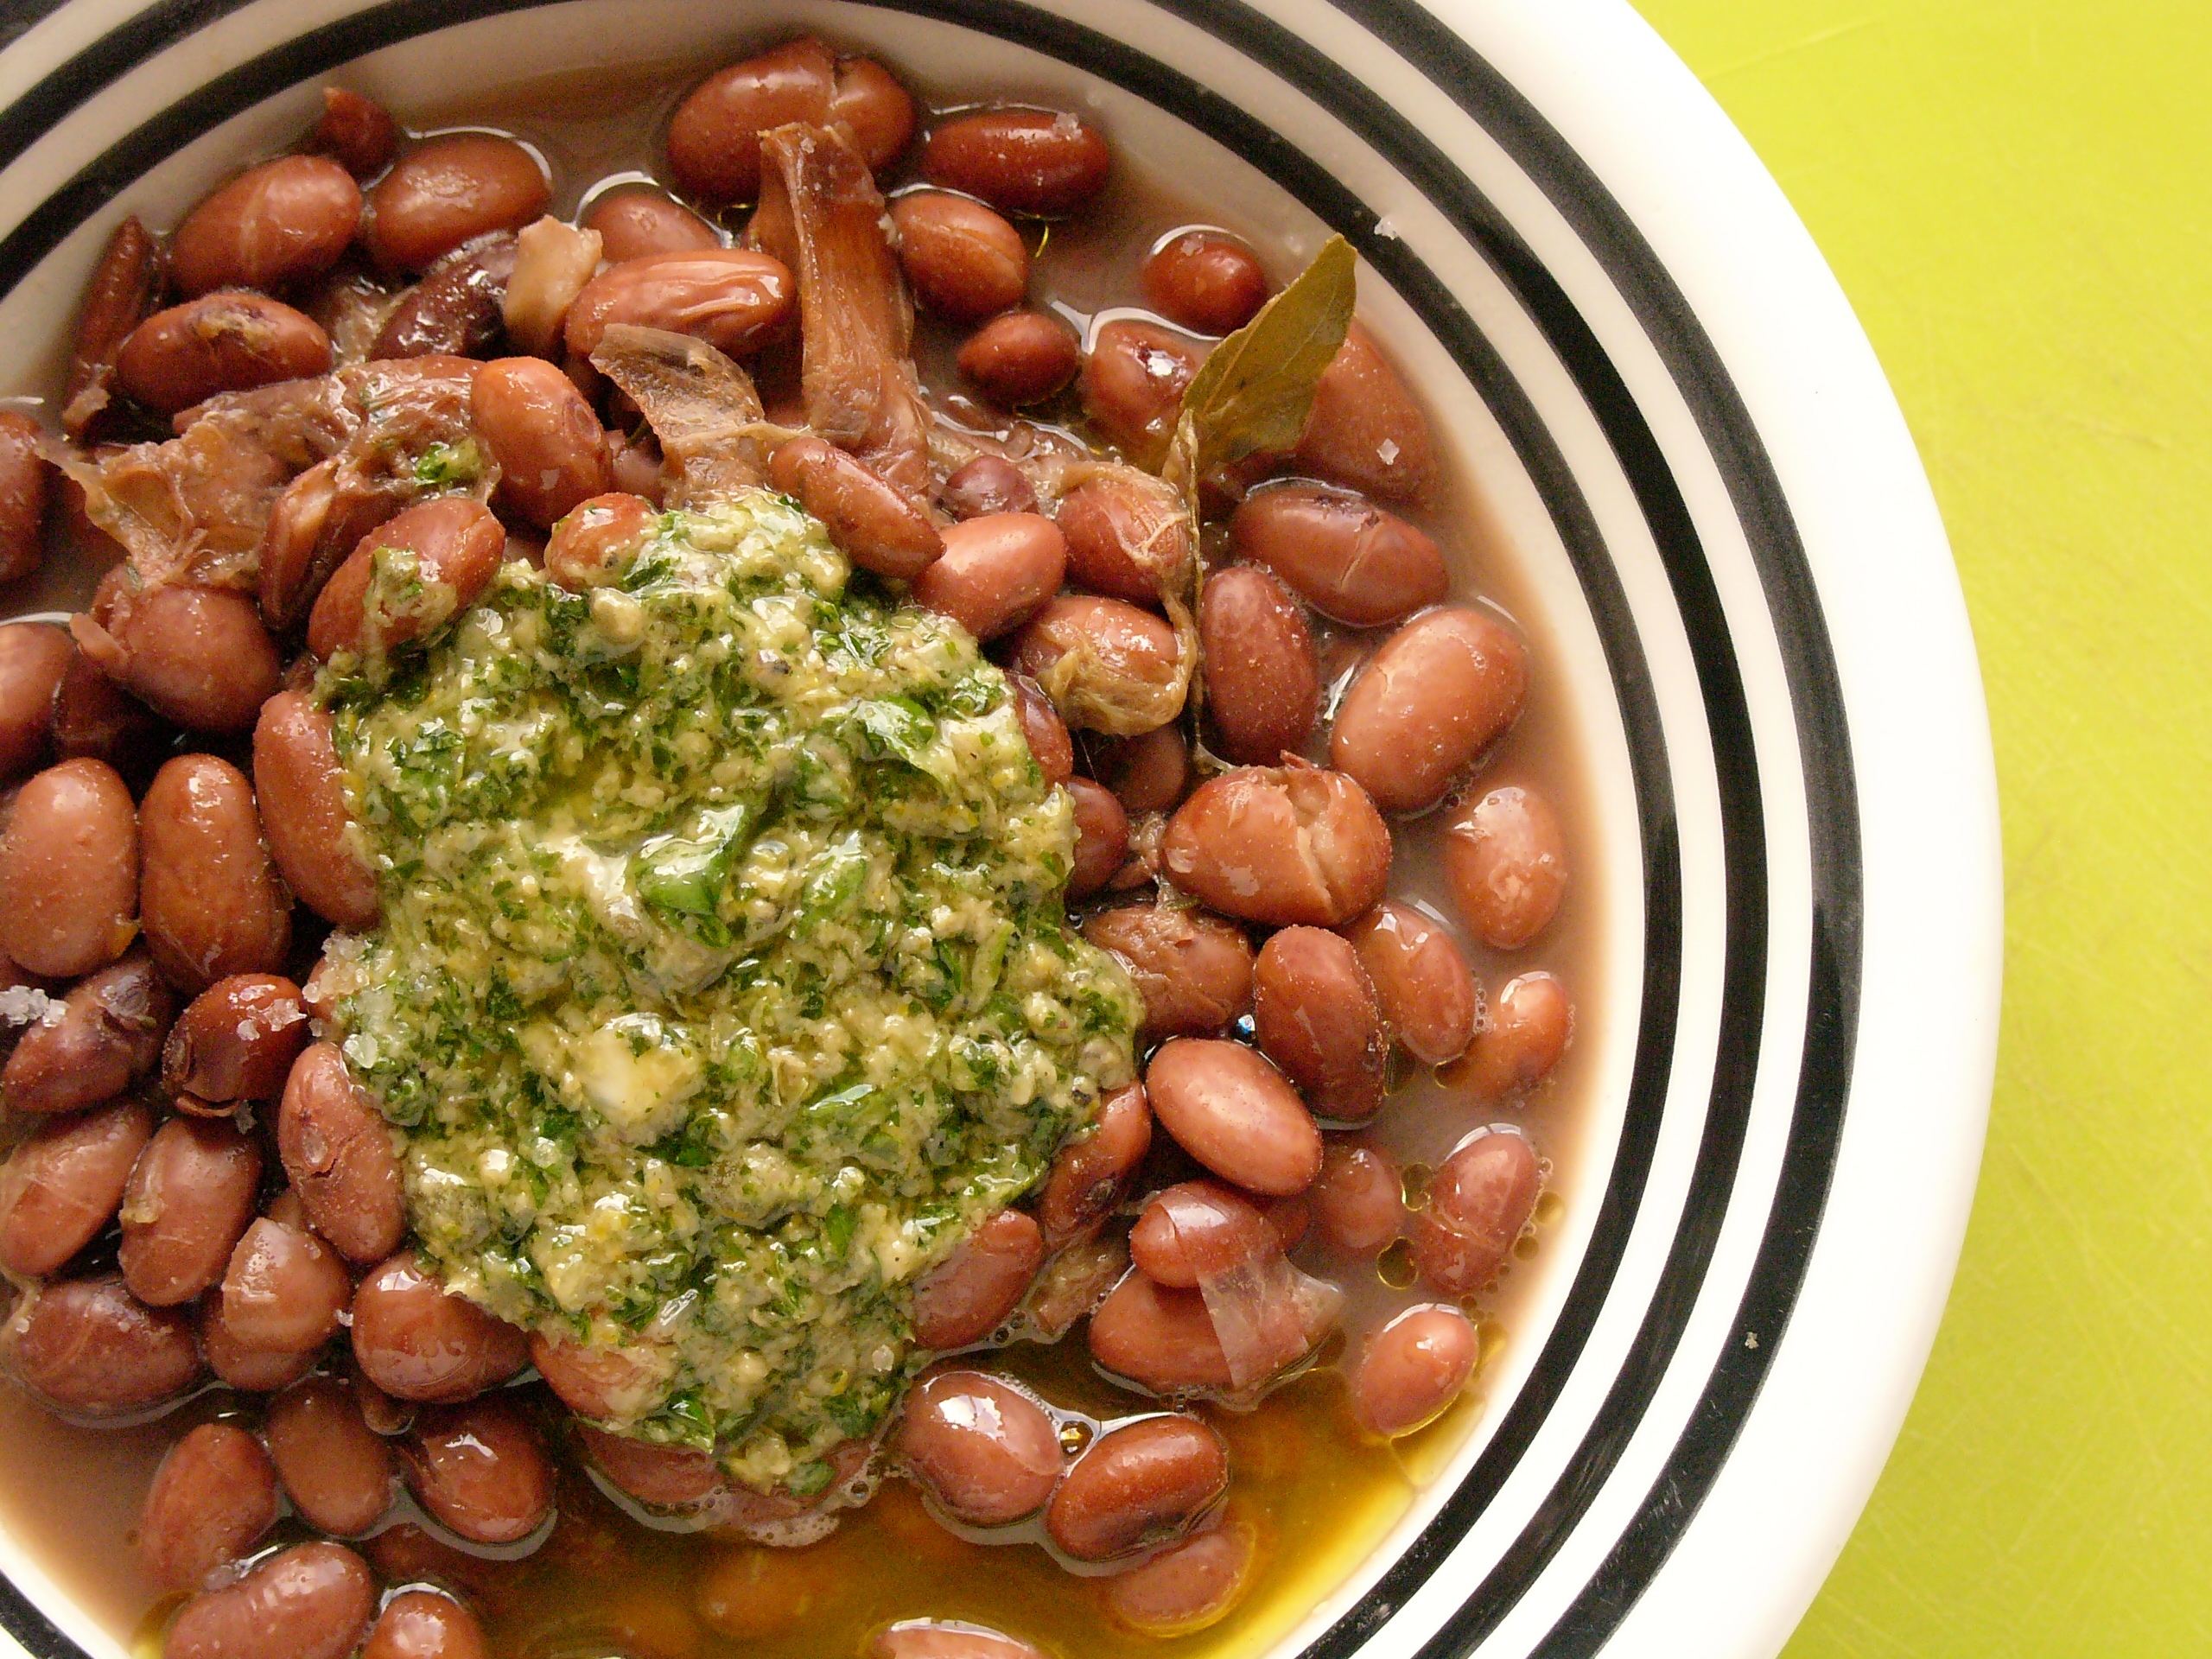 'Sometimes it snows in April': braised beans with greens